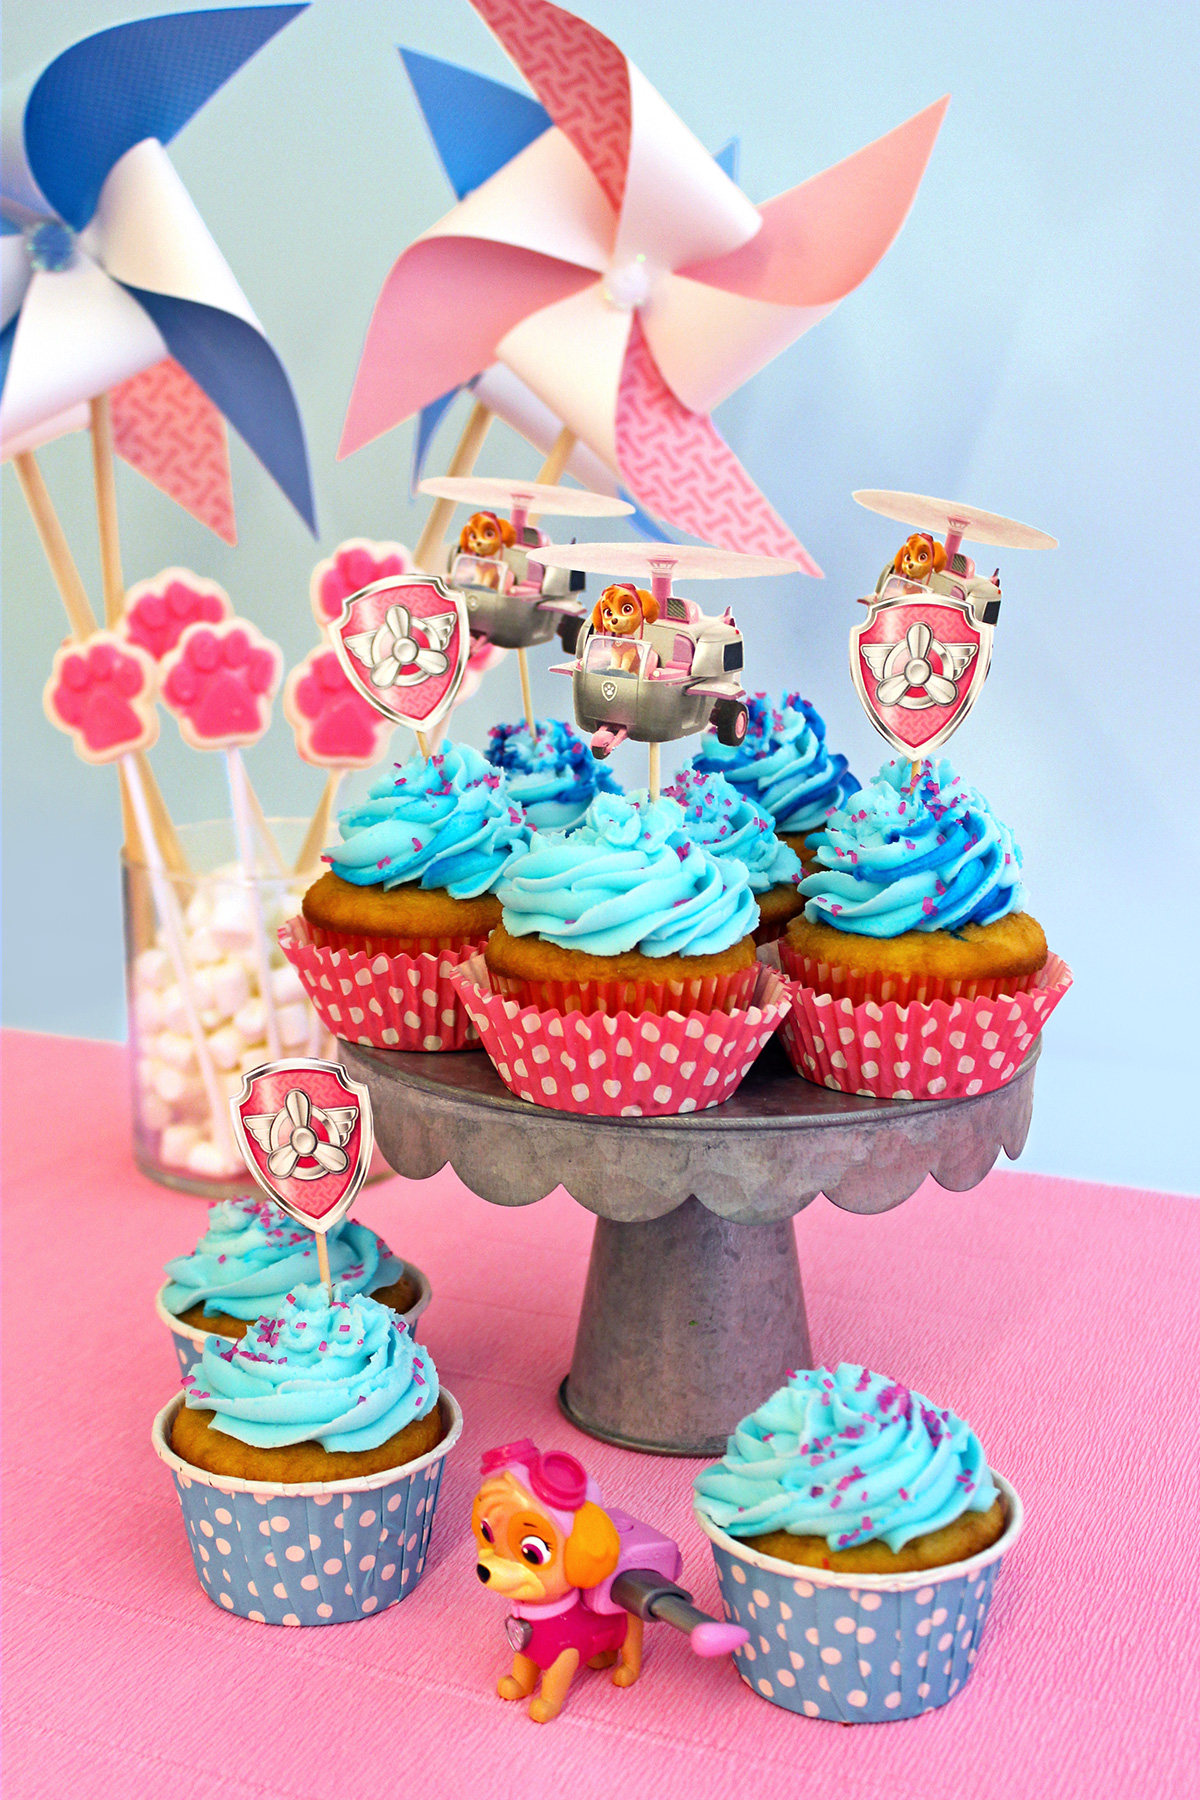 PAW Patrol Skye Cupcakes Toppers Nickelodeon Parents